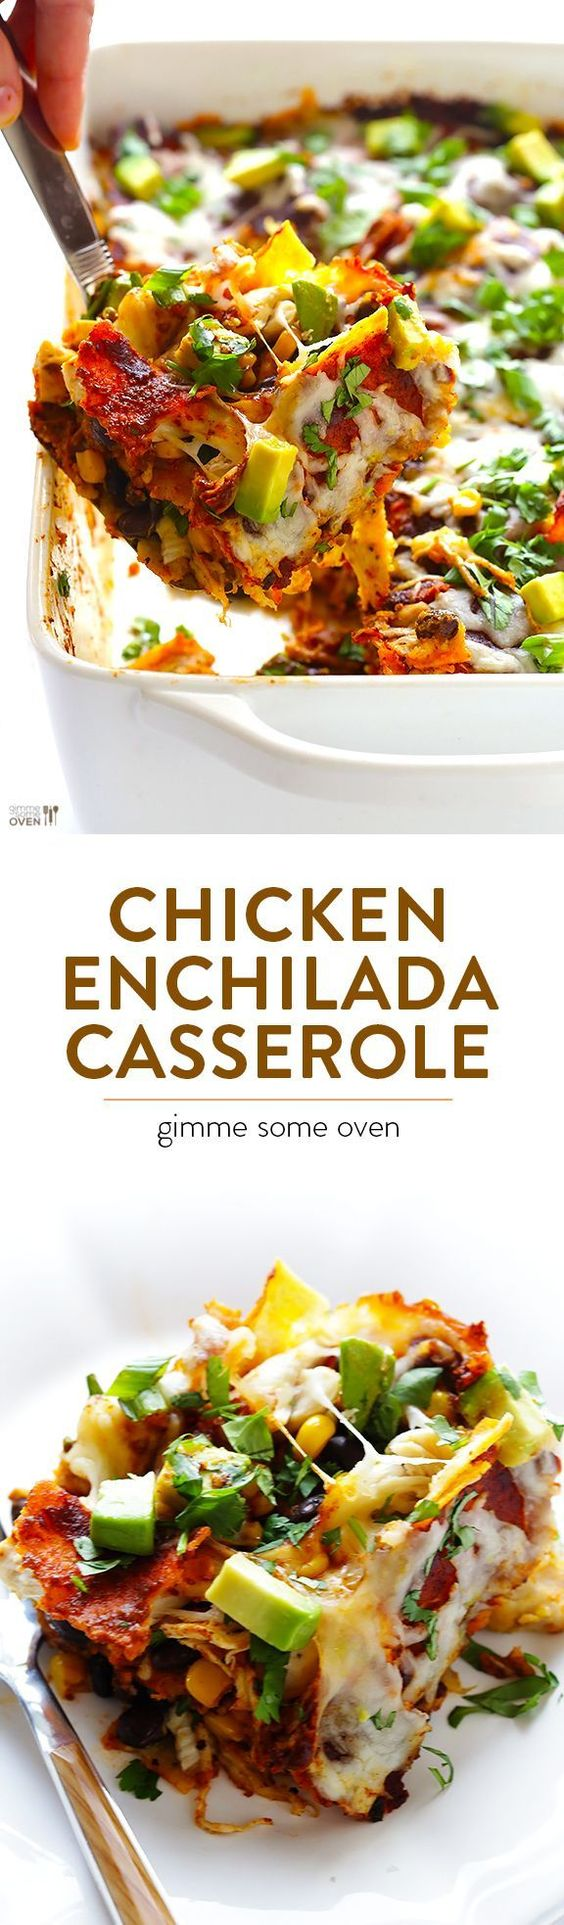 """Chicken Enchilada Casserole -- my favorite recipe for enchiladas that's made extra easy by being """"stacked"""" into a casserole   gimmesomeoven.com"""